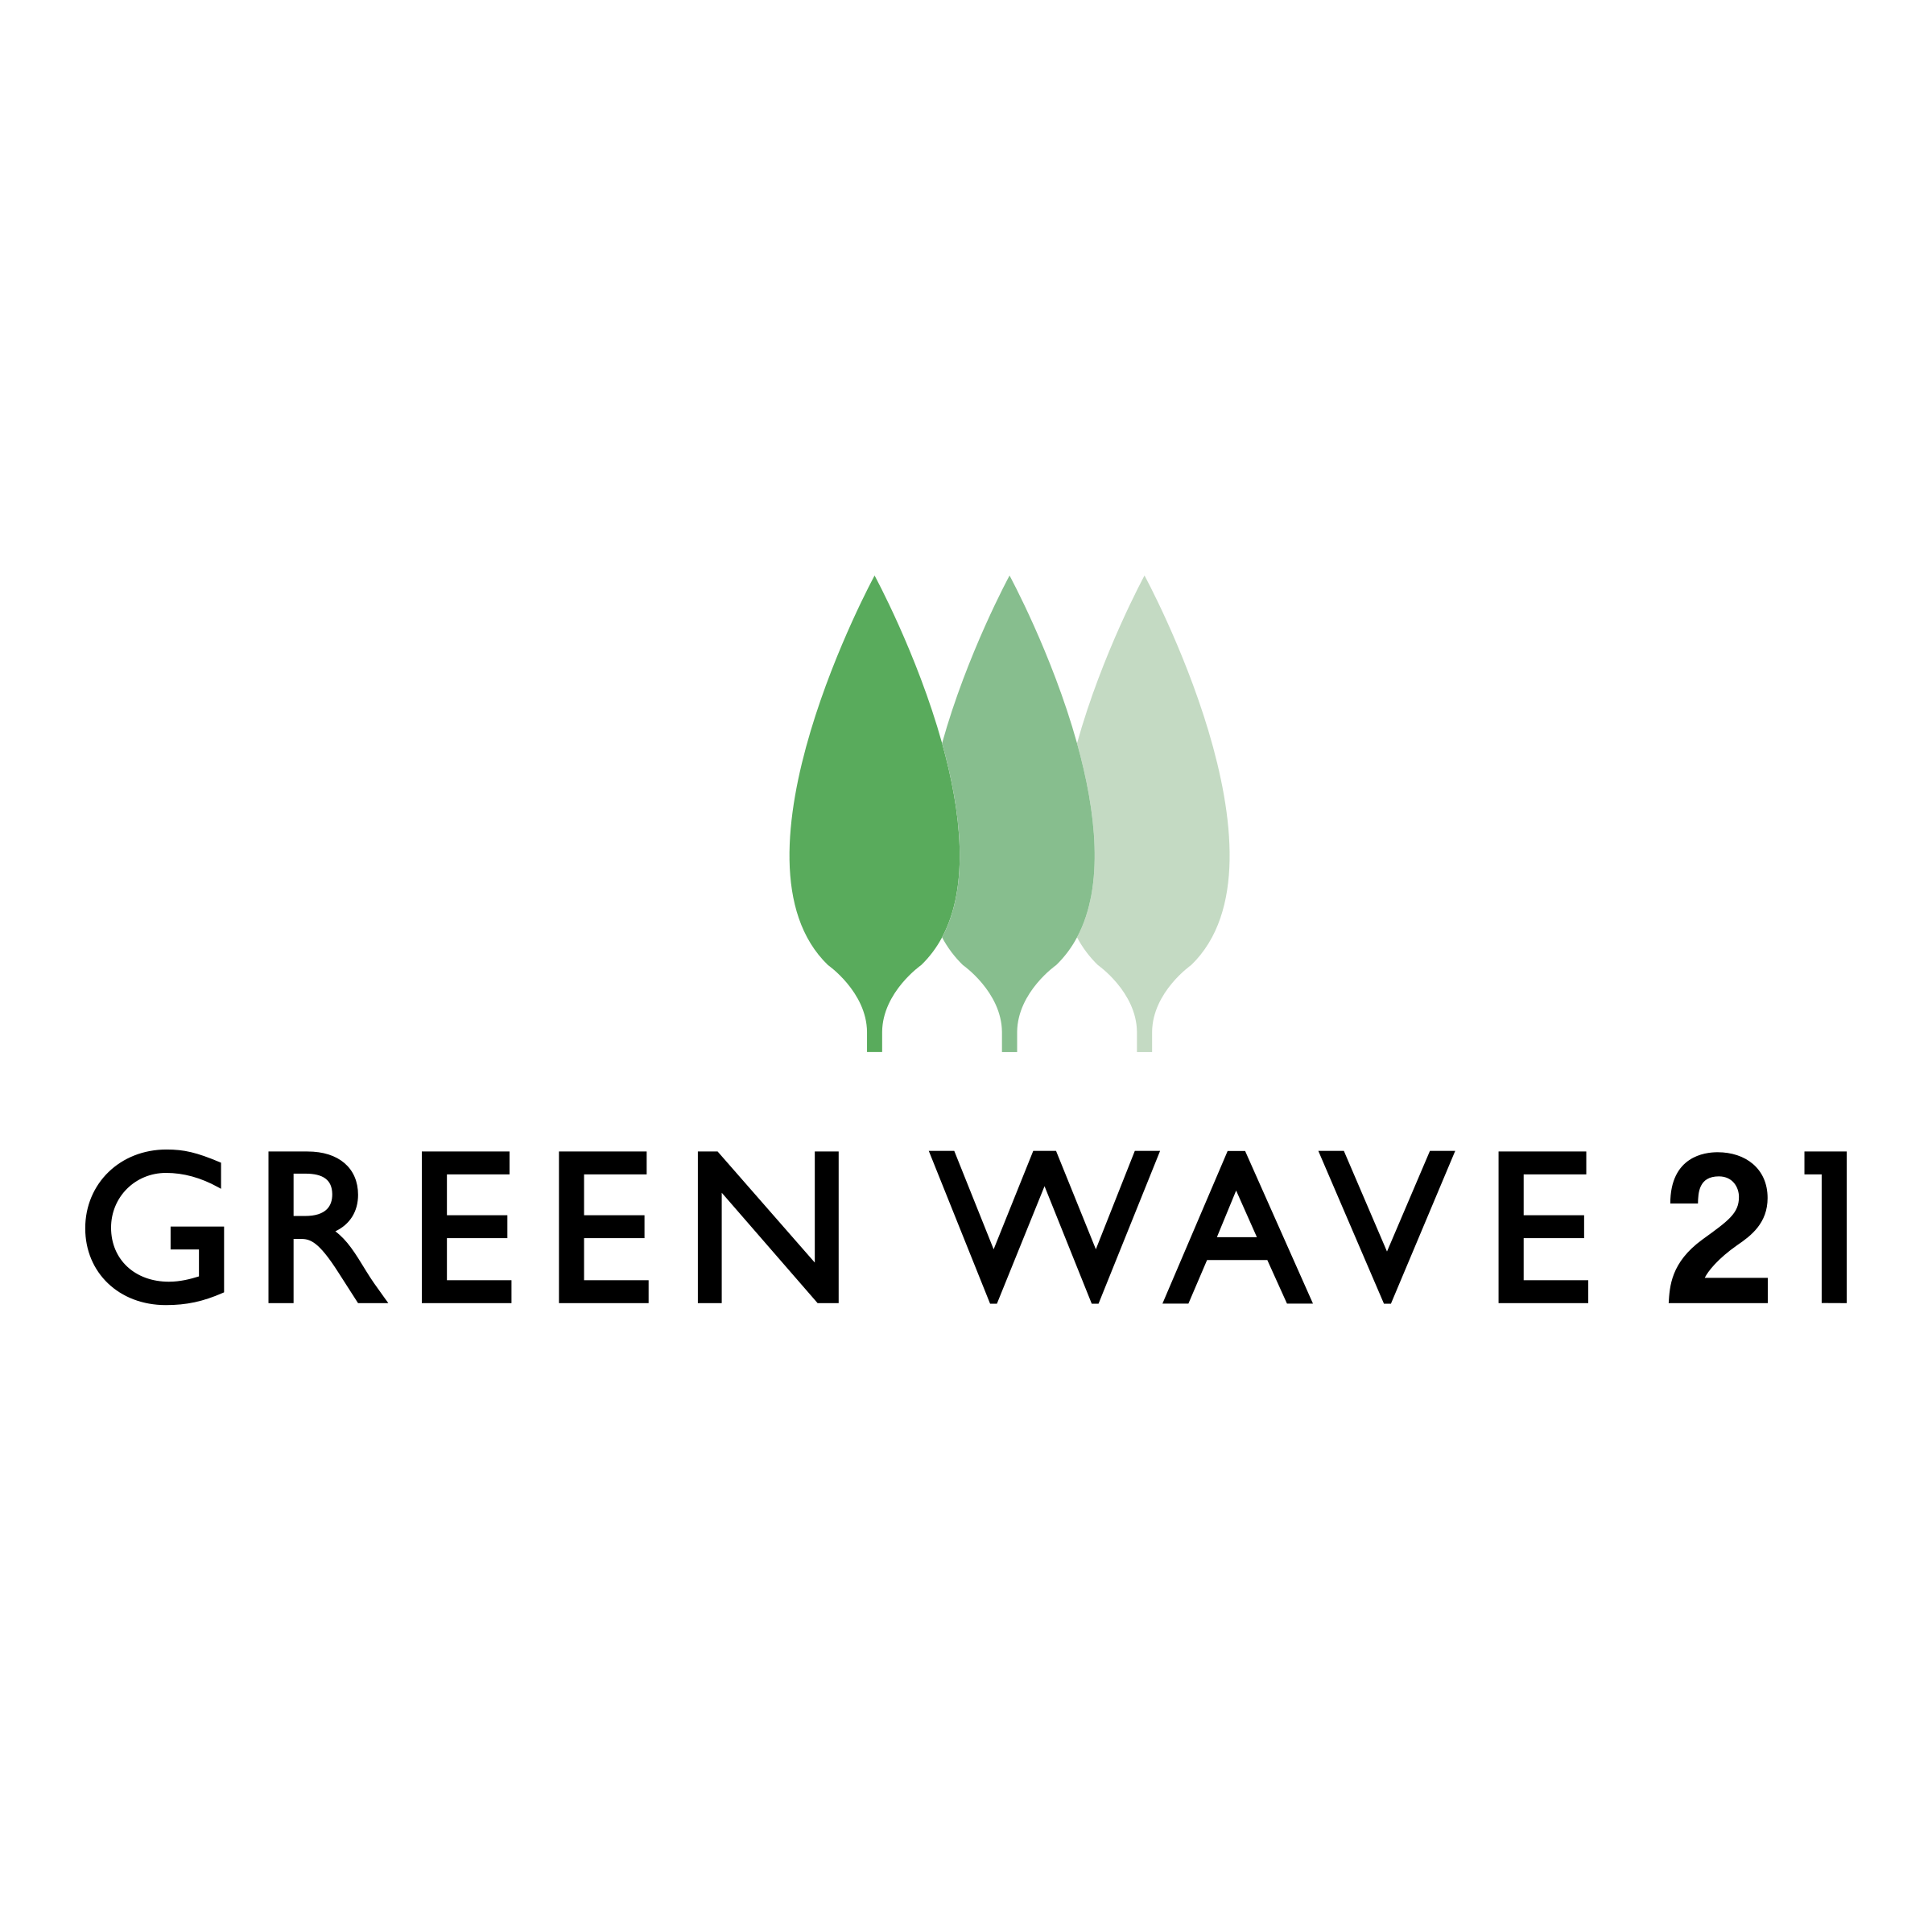 Green wave vector png. Logo transparent svg freebie